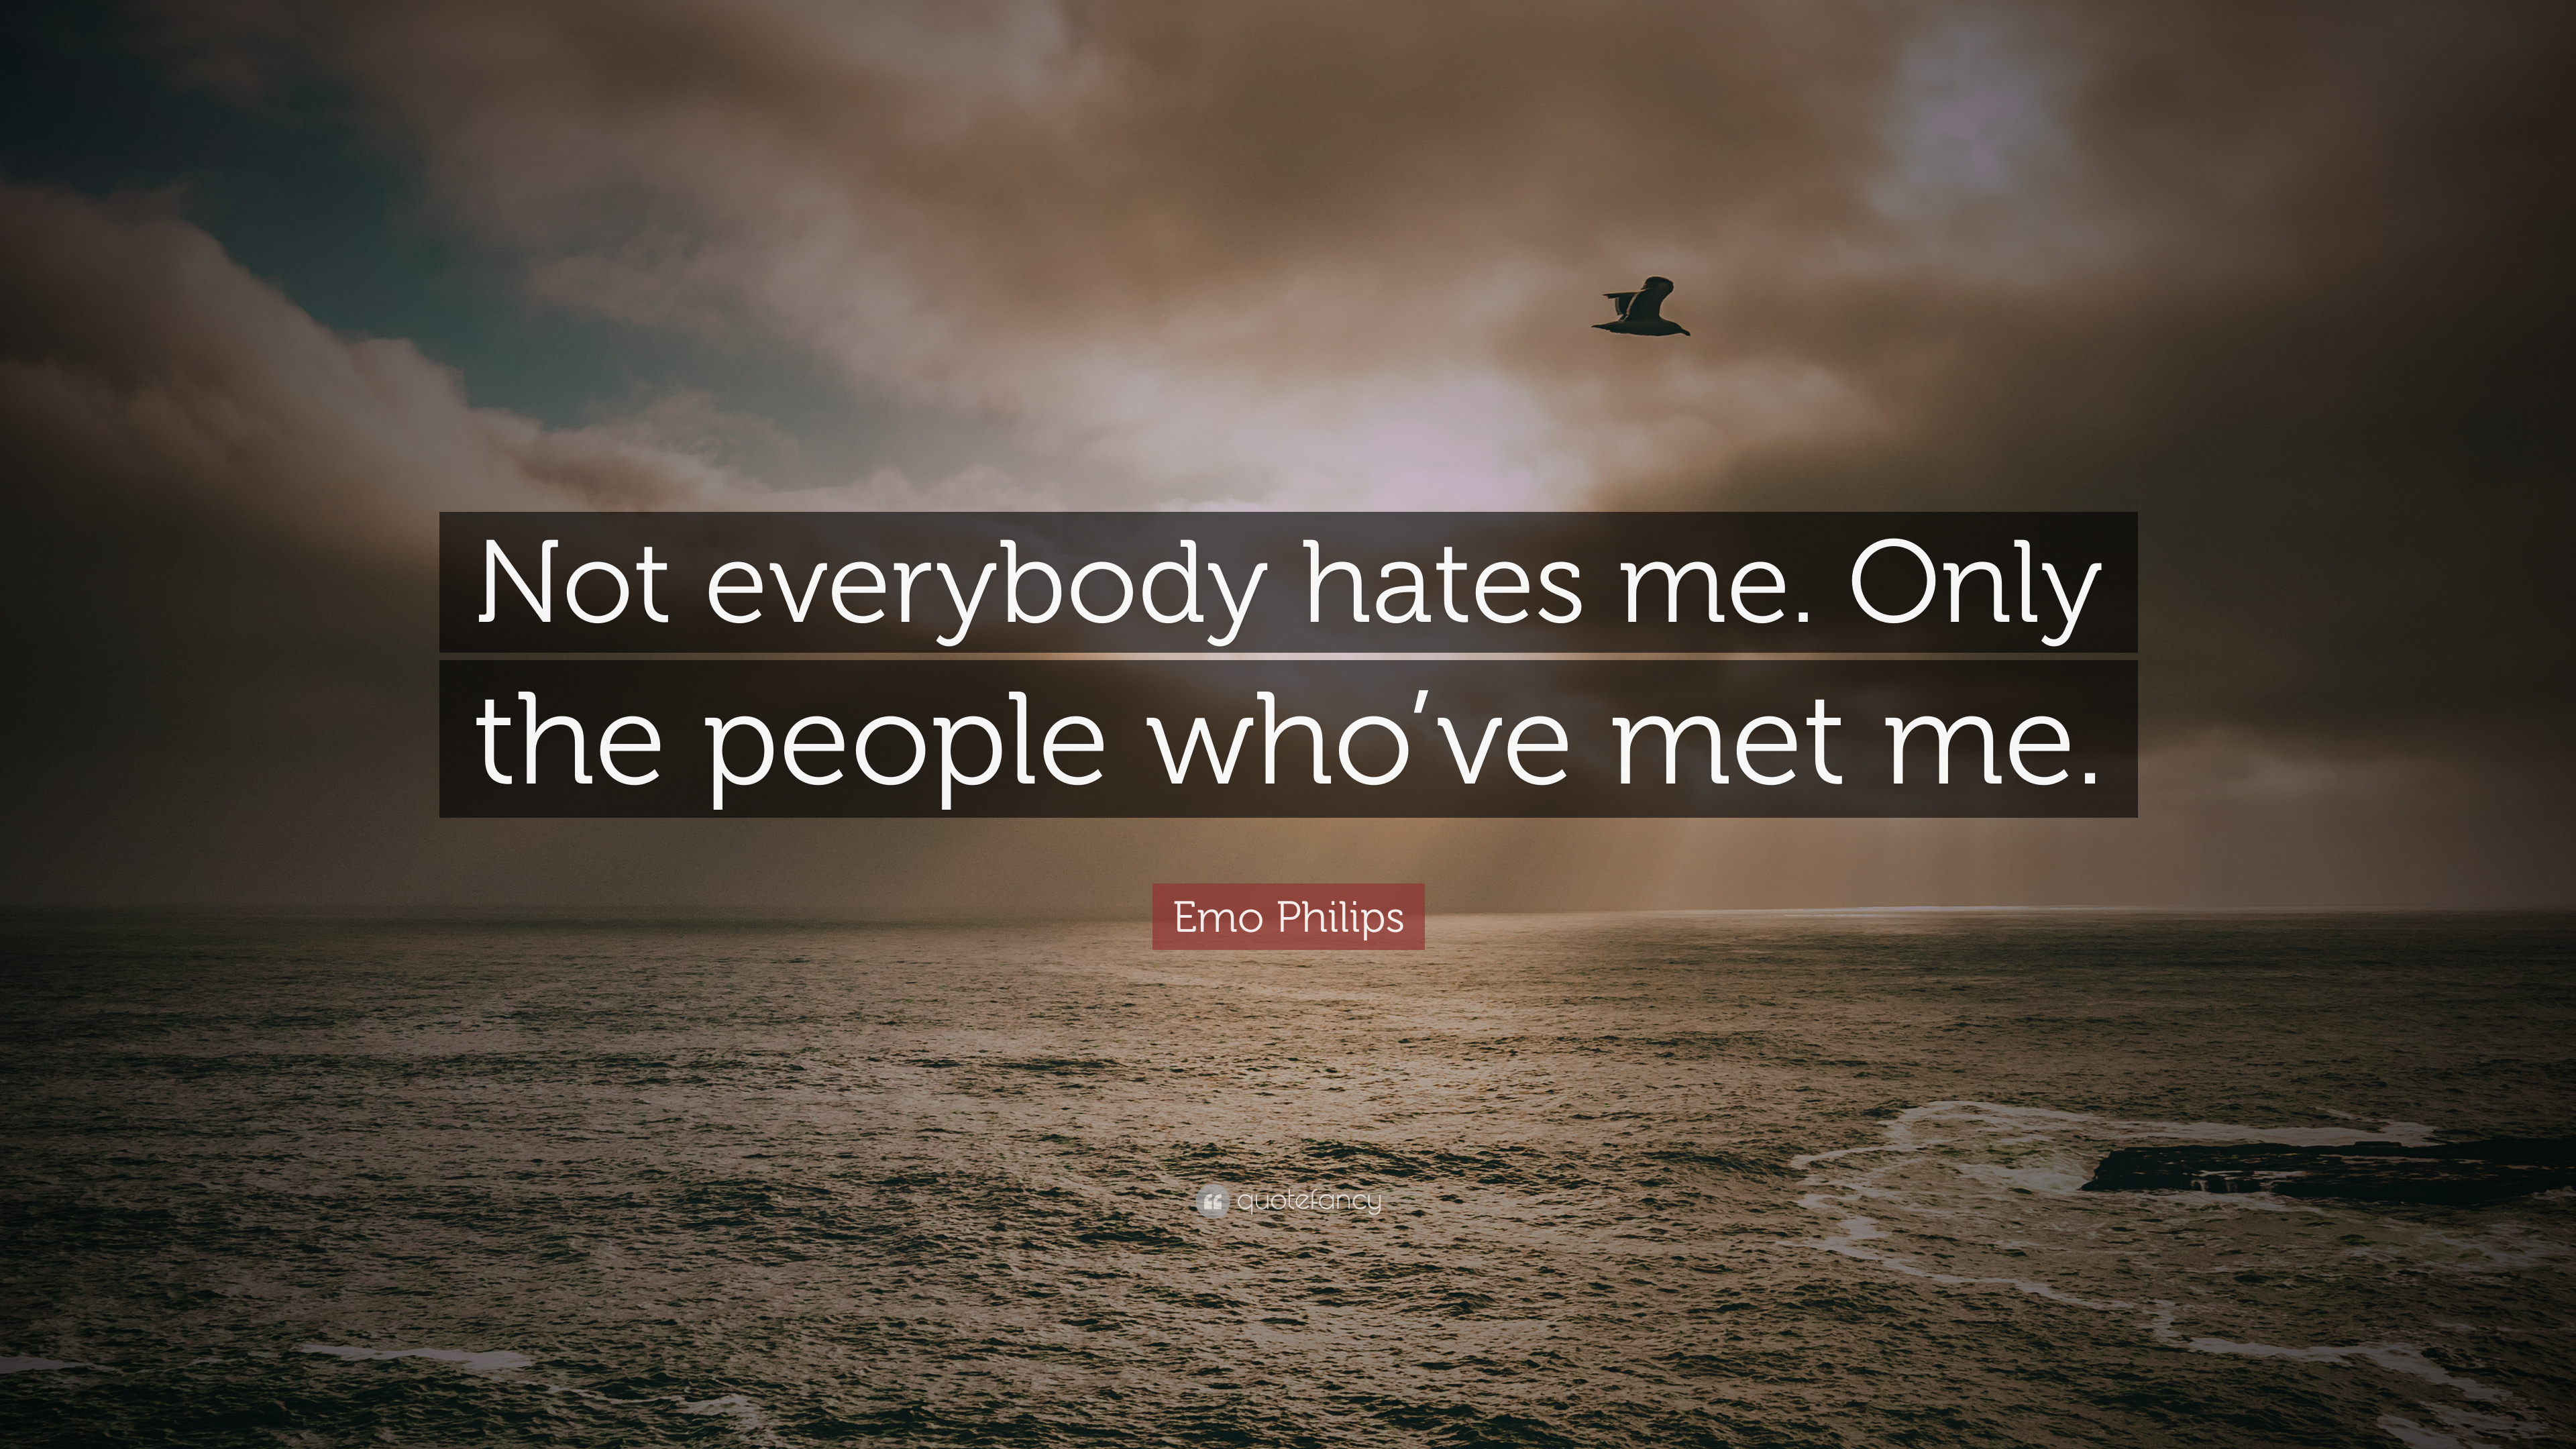 Everybody Hates Me Quotes: Emo Philips Quotes (100 Wallpapers)